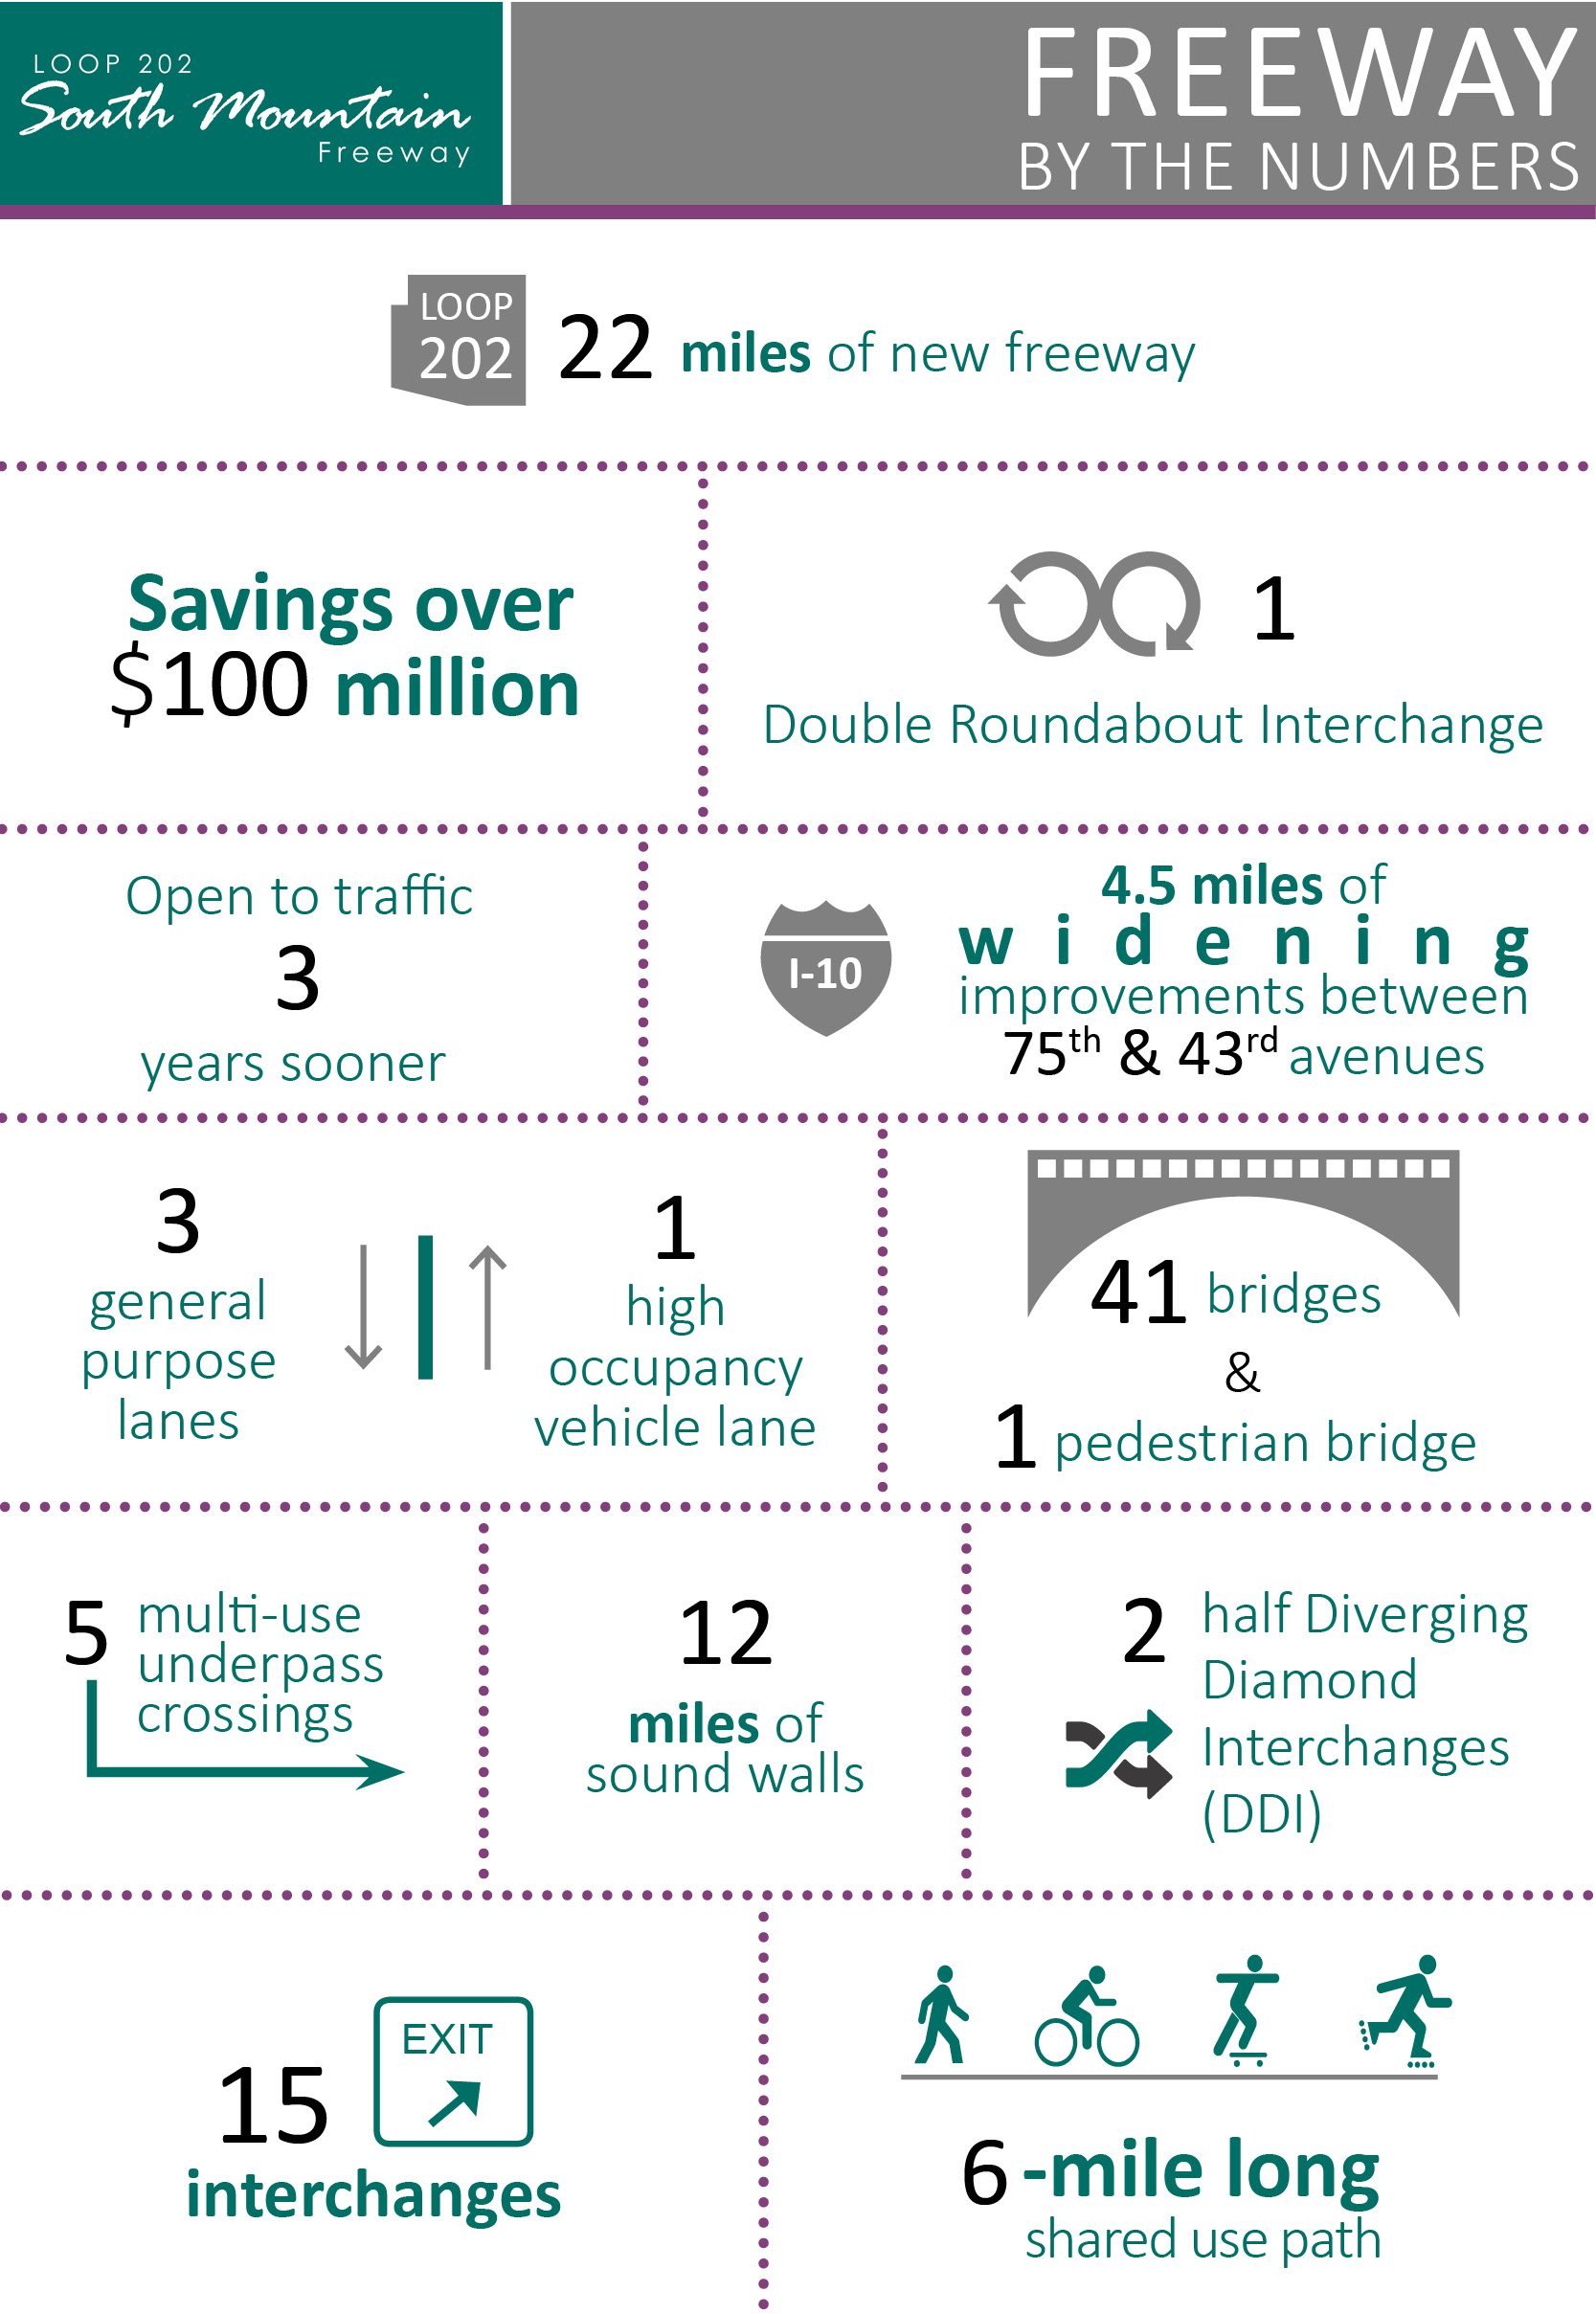 Loop 202 South Mountain Freeway - By the Numbers Infographic